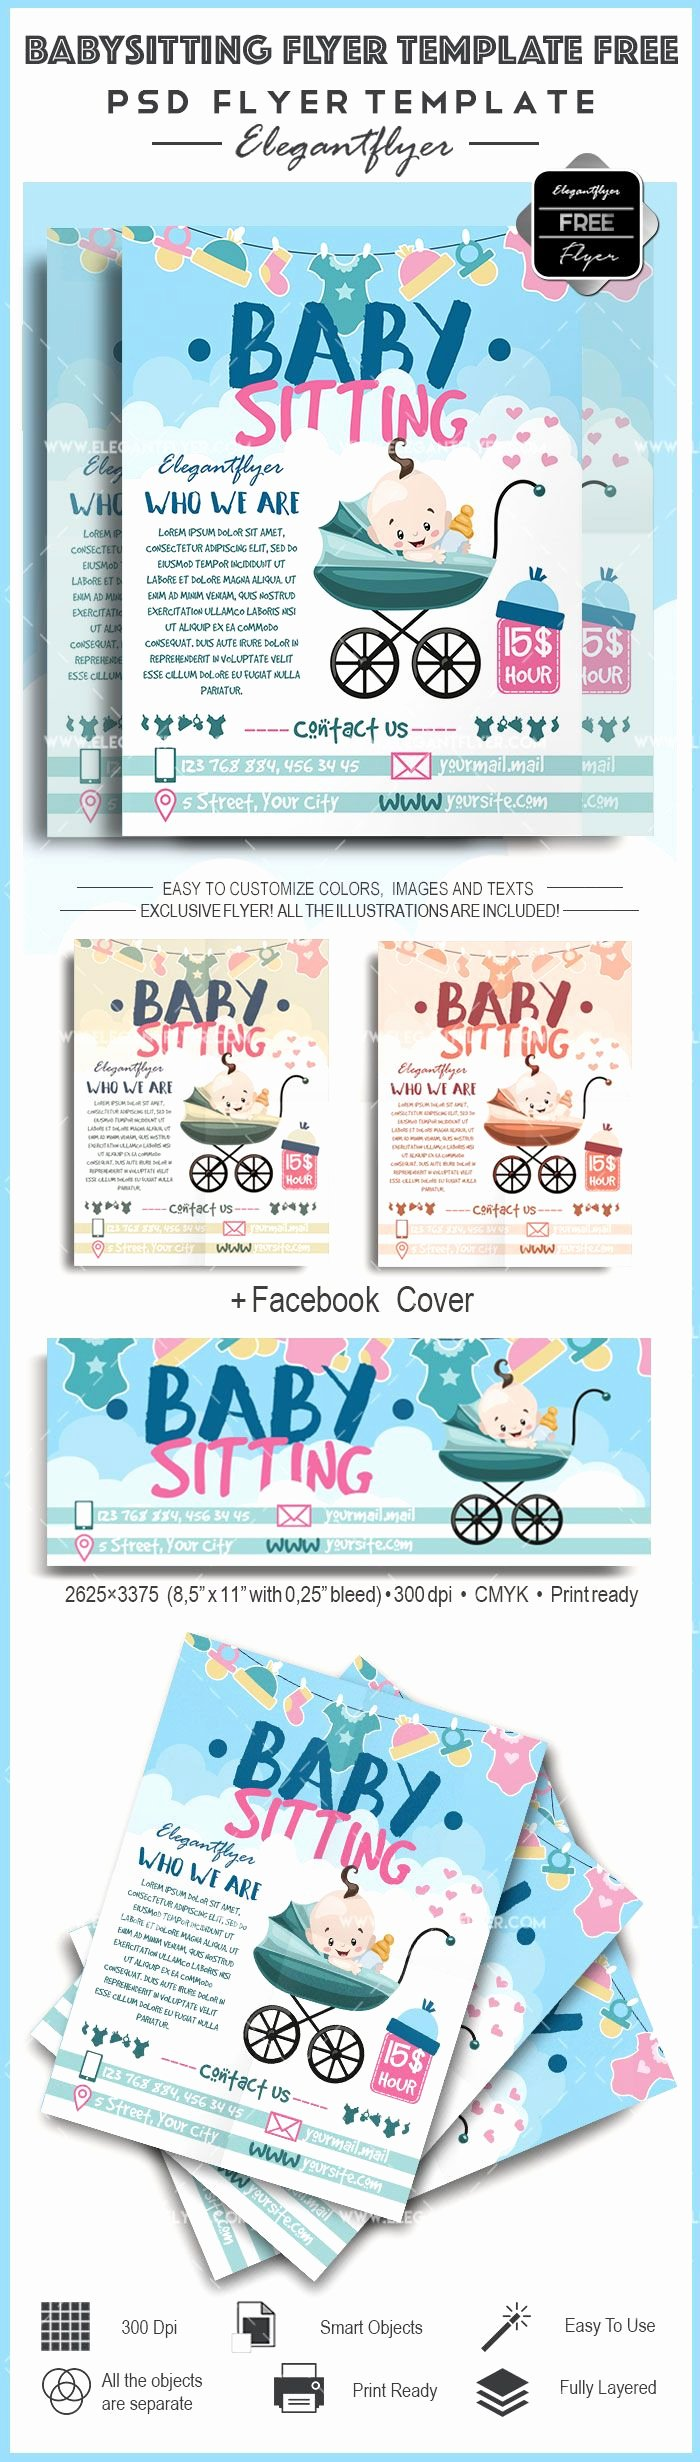 Babysitting Flyer Templates Free Lovely Best 20 Babysitting Flyers Ideas On Pinterest